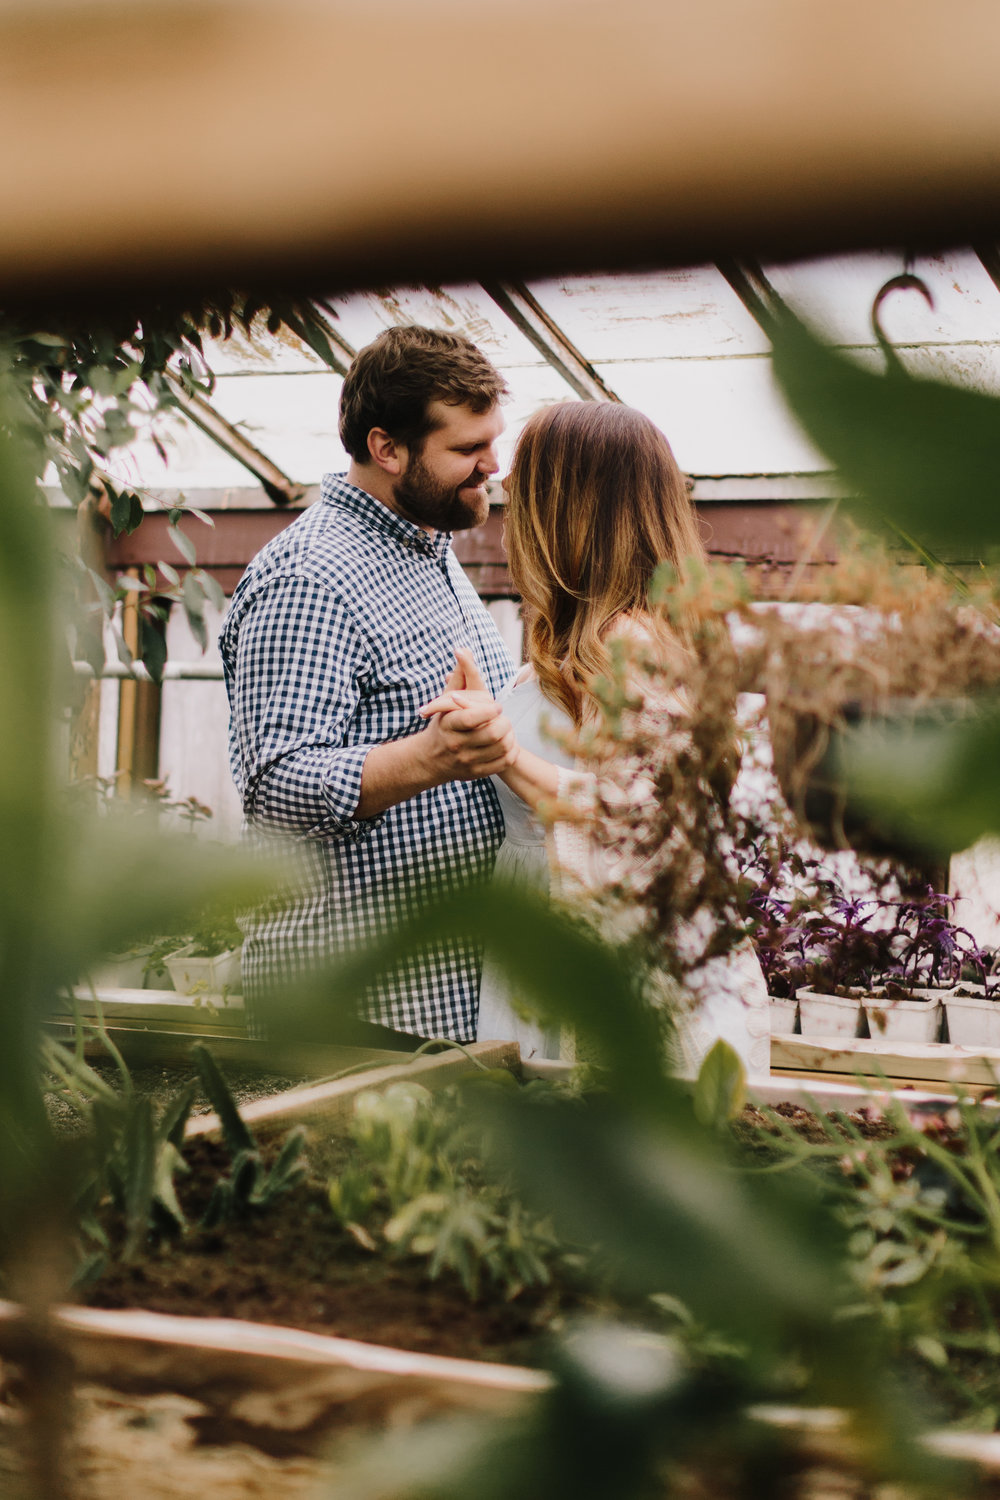 alyssa barletter photography greenhouse engagement photographer kansas city spring wedding-3.jpg